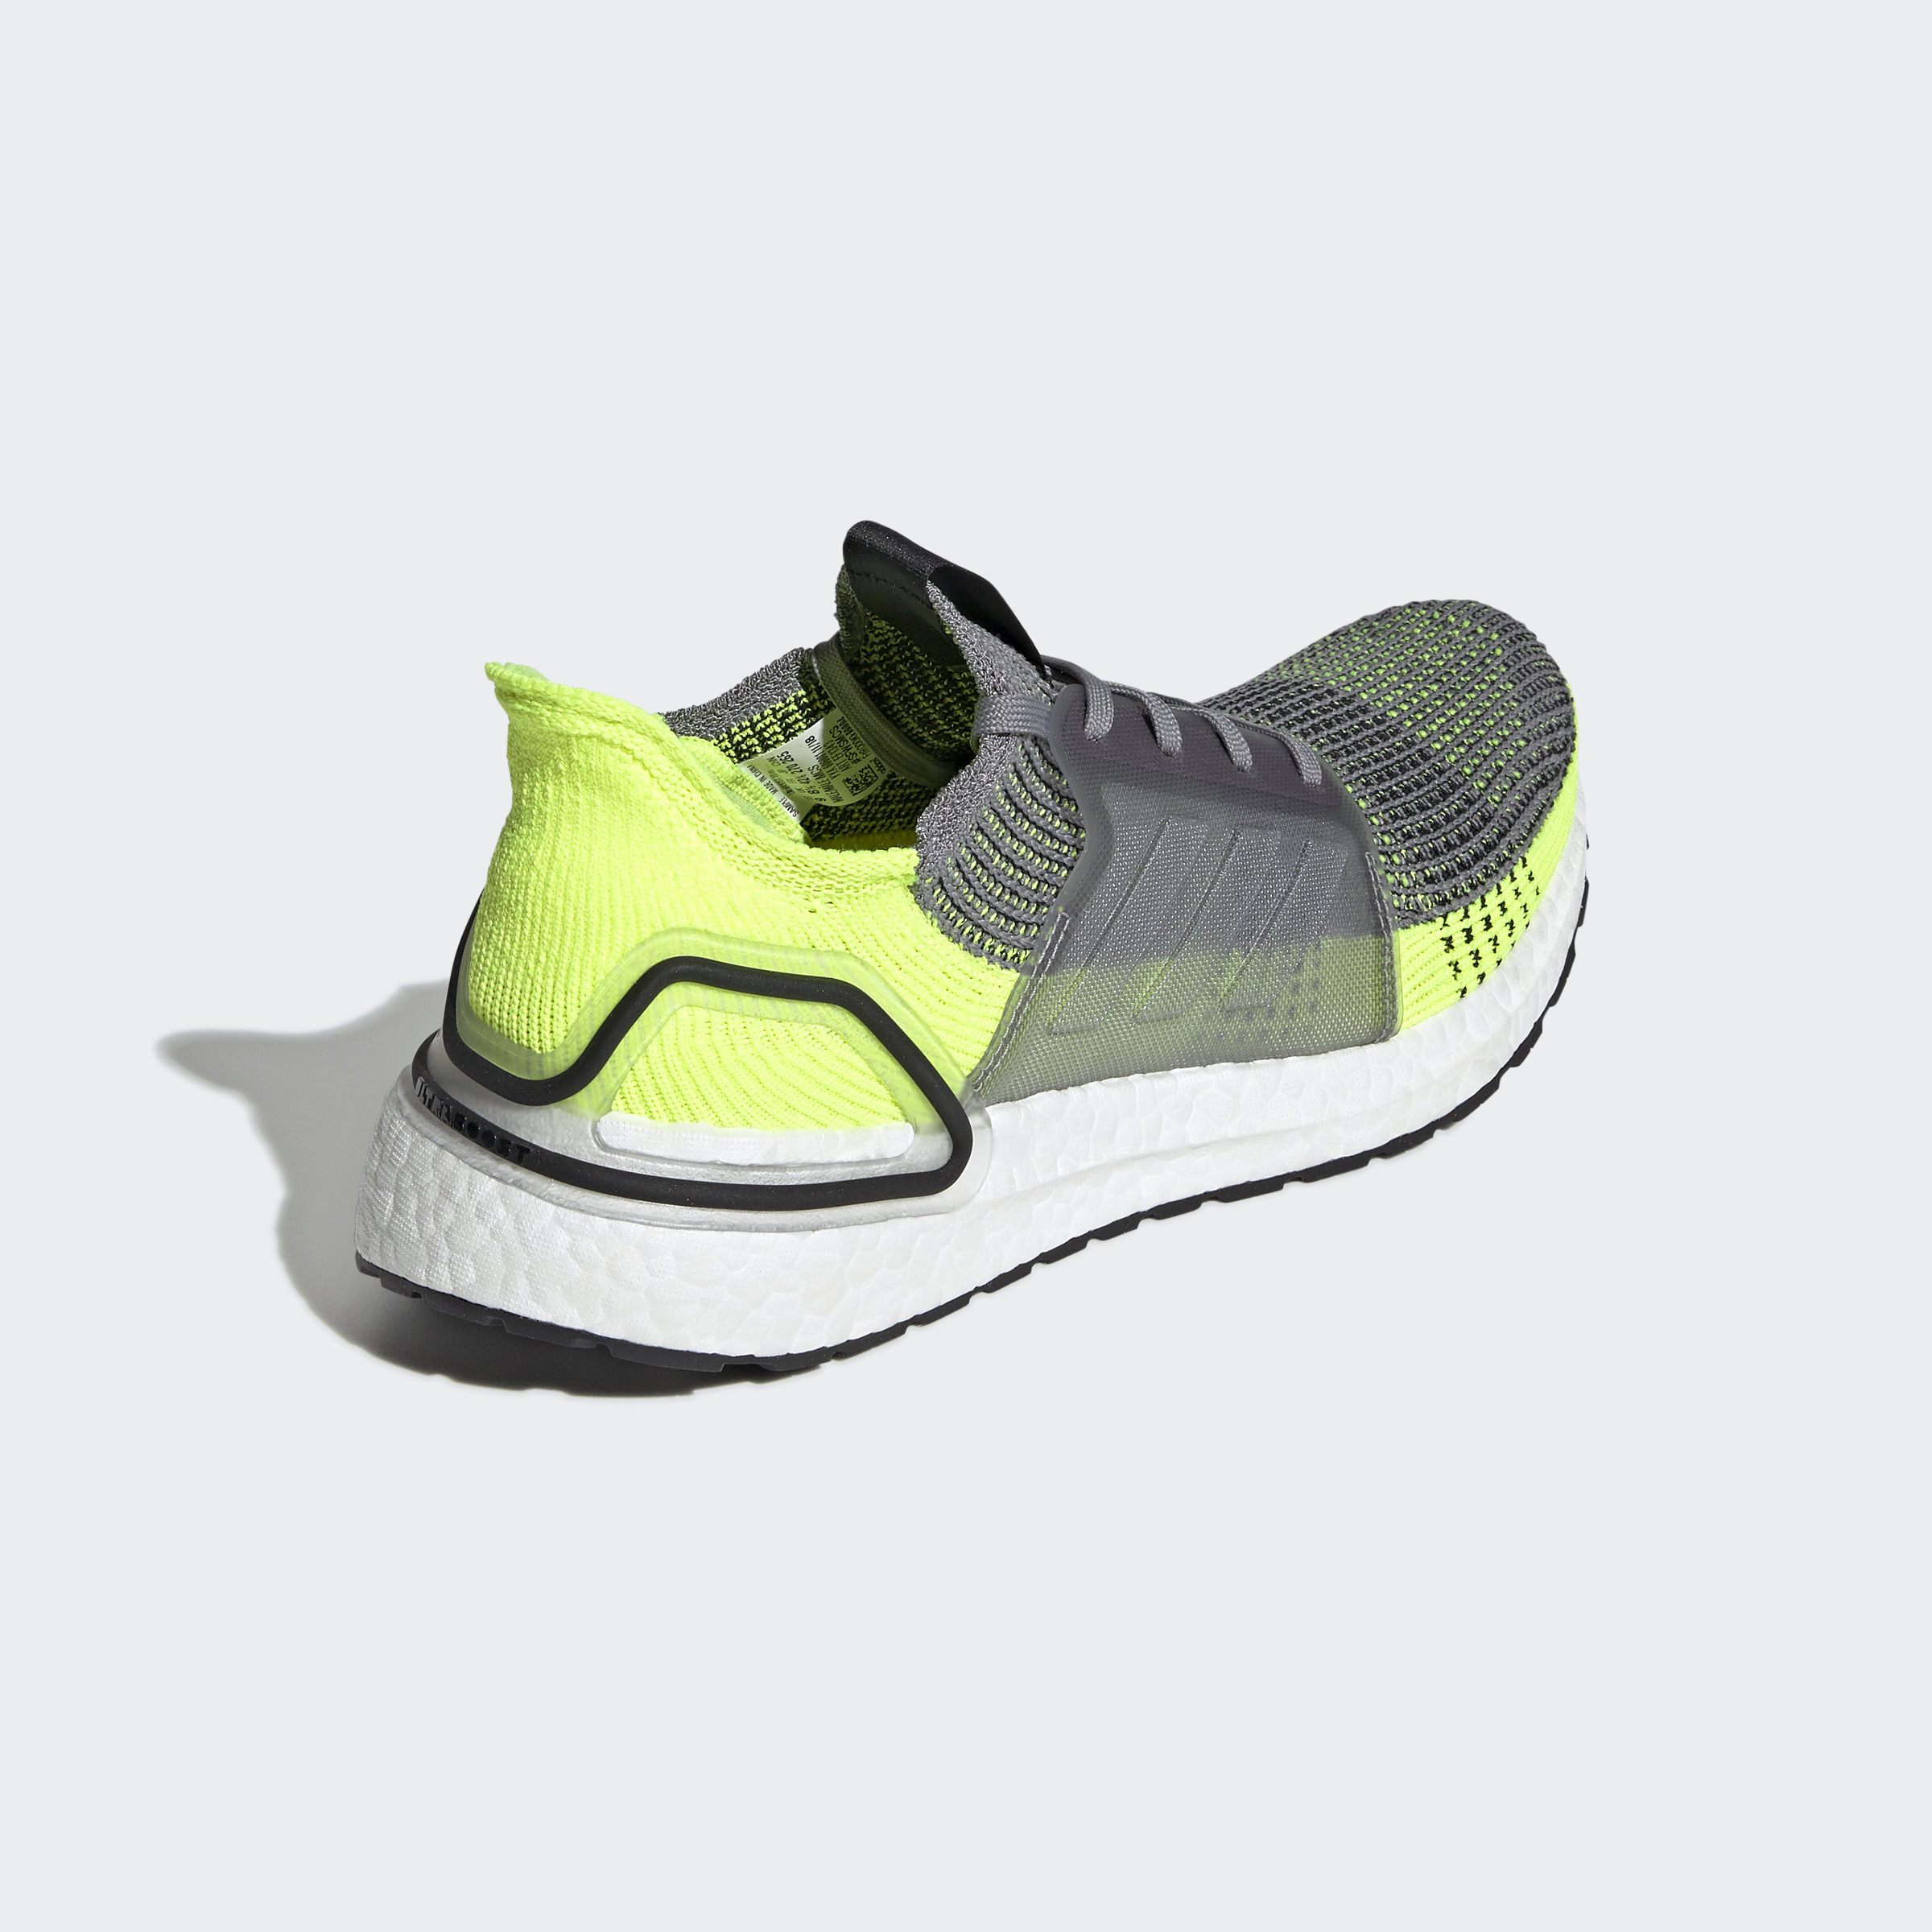 adidas-Ultraboost-19-Shoes-Athletic-amp-Sneakers thumbnail 32